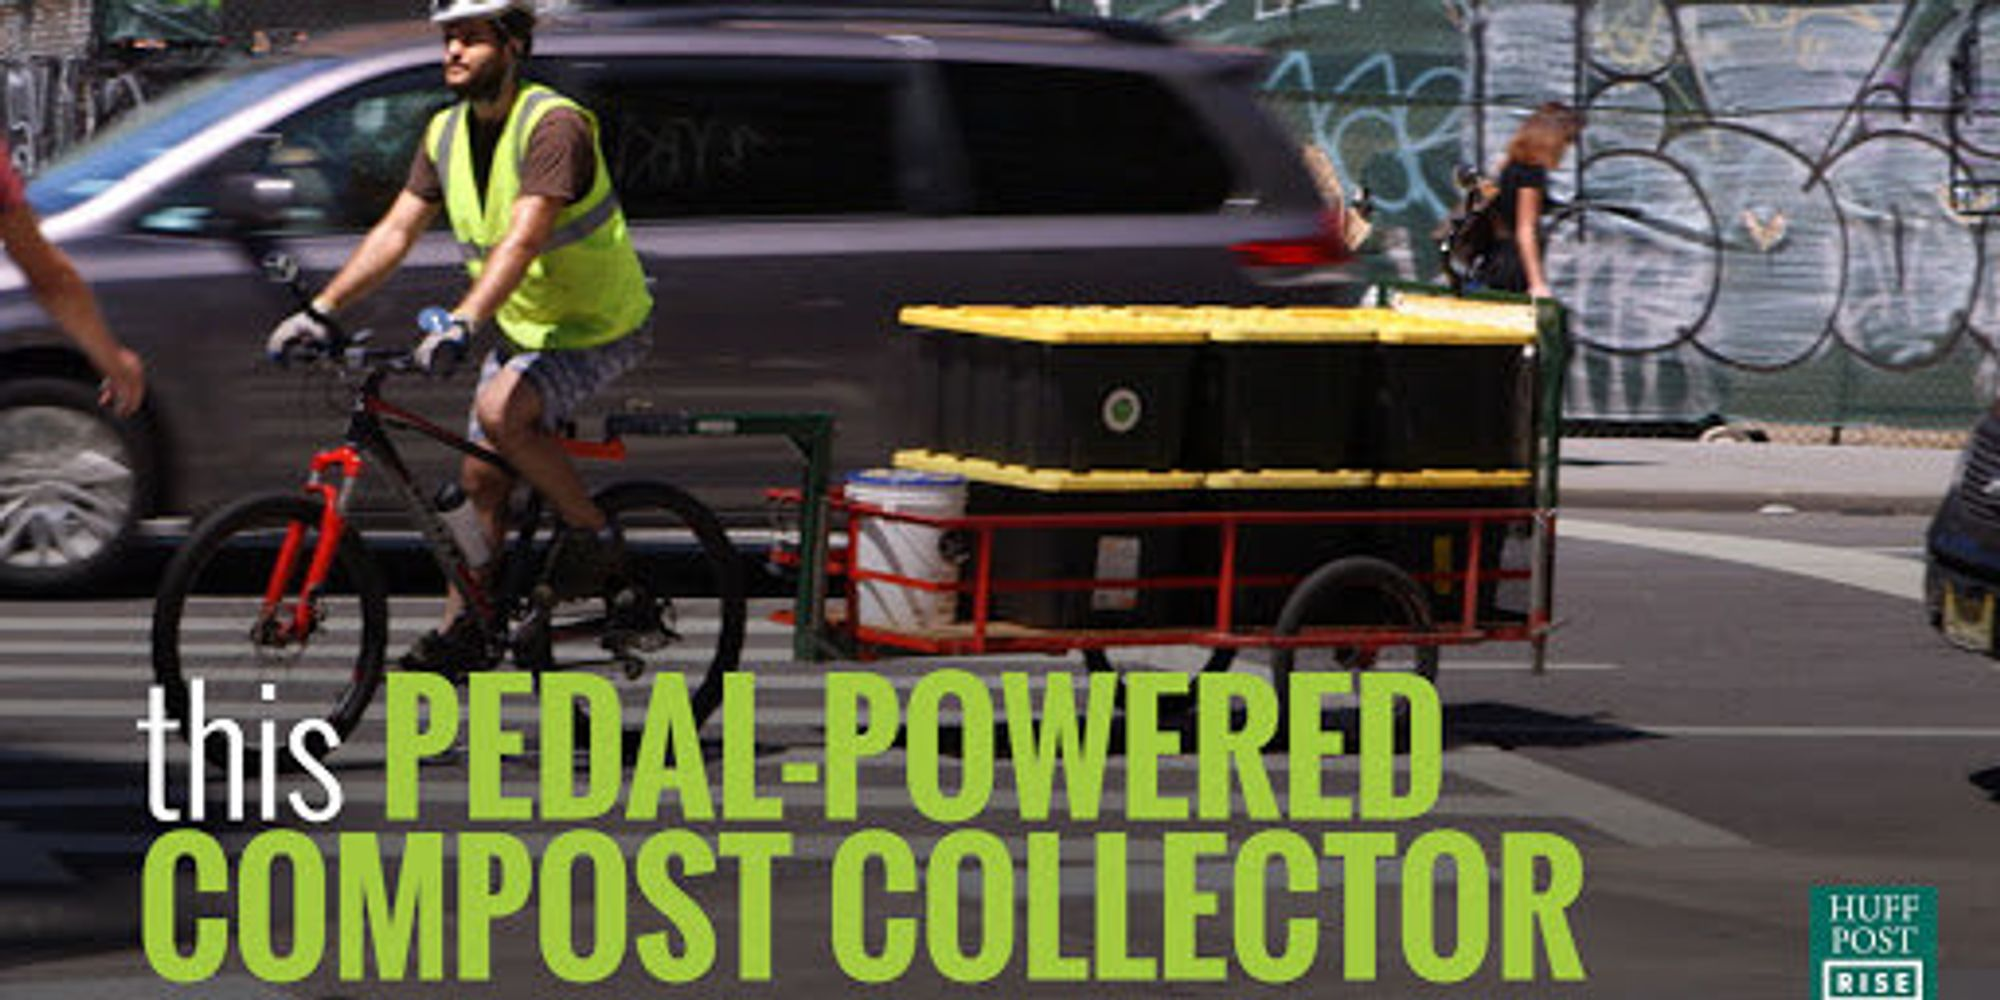 A Compost-Collecting Bicycle Is Helping Reduce Food Waste In New York